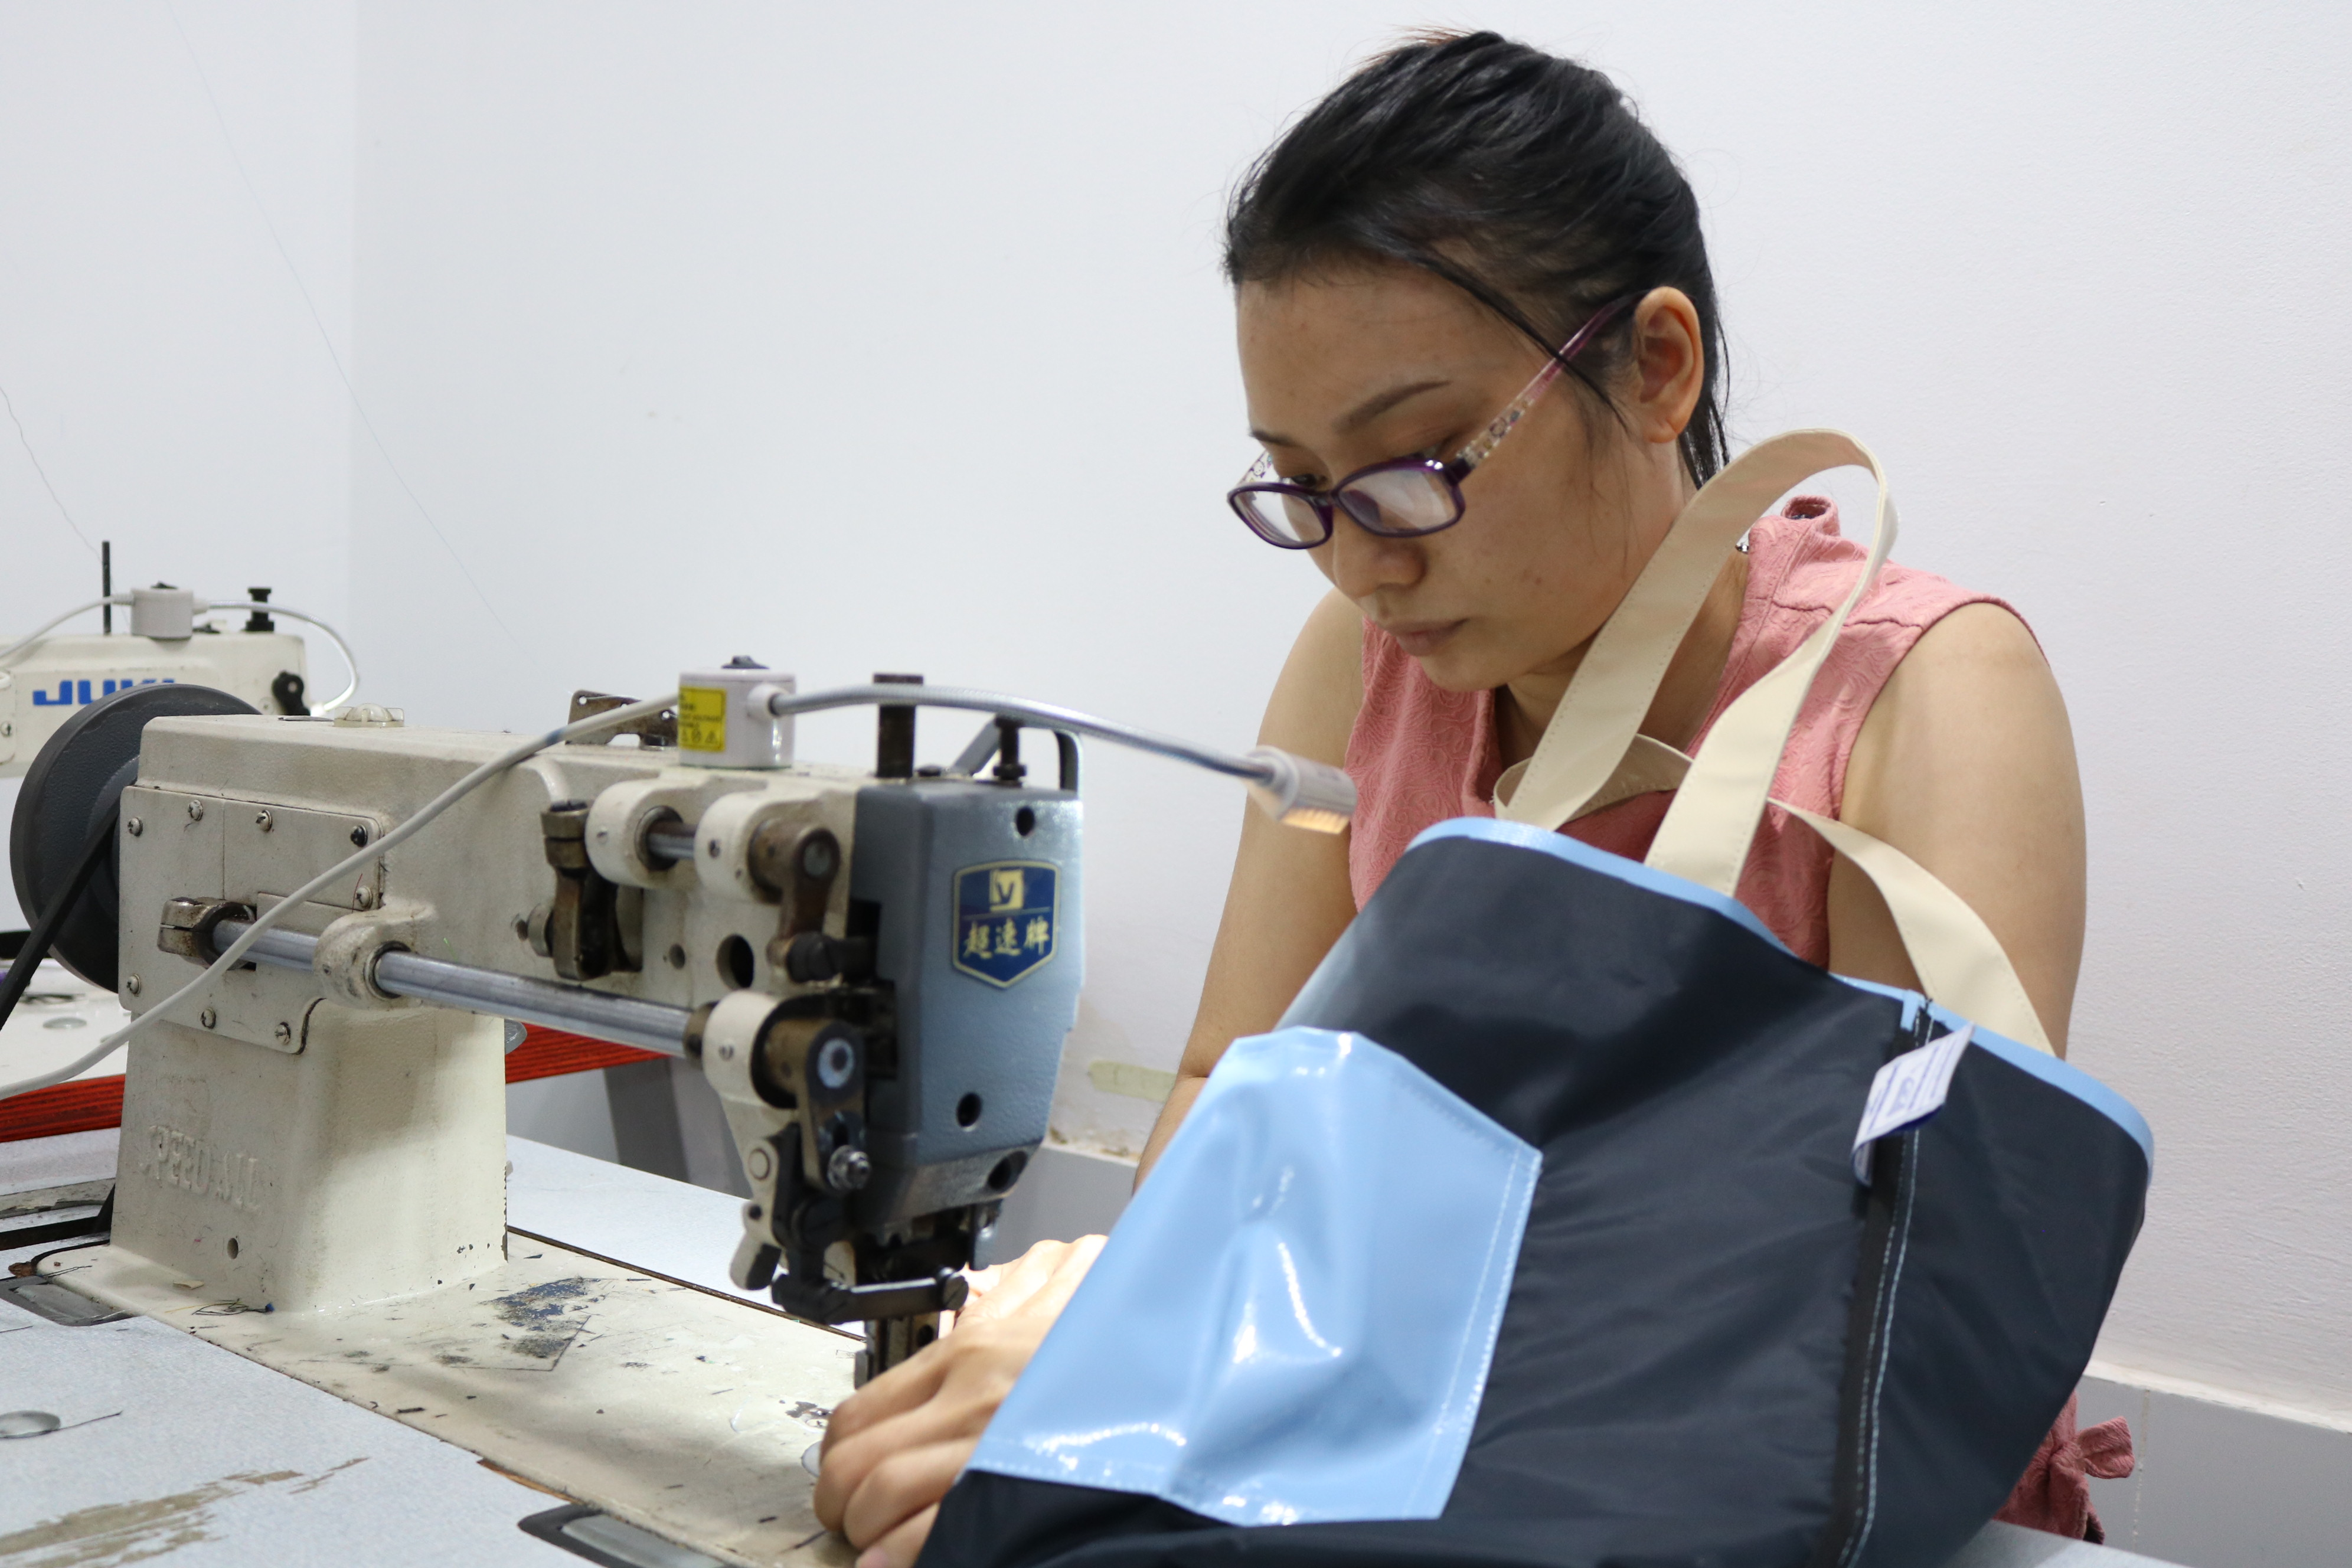 Luu Doan Hong Cam works on a tote bag made from discarded tarps at the Dong Dong Sai Gon workshop in Ho Chi Minh City, August 2020. Photo: Hoang An / Tuoi Tre